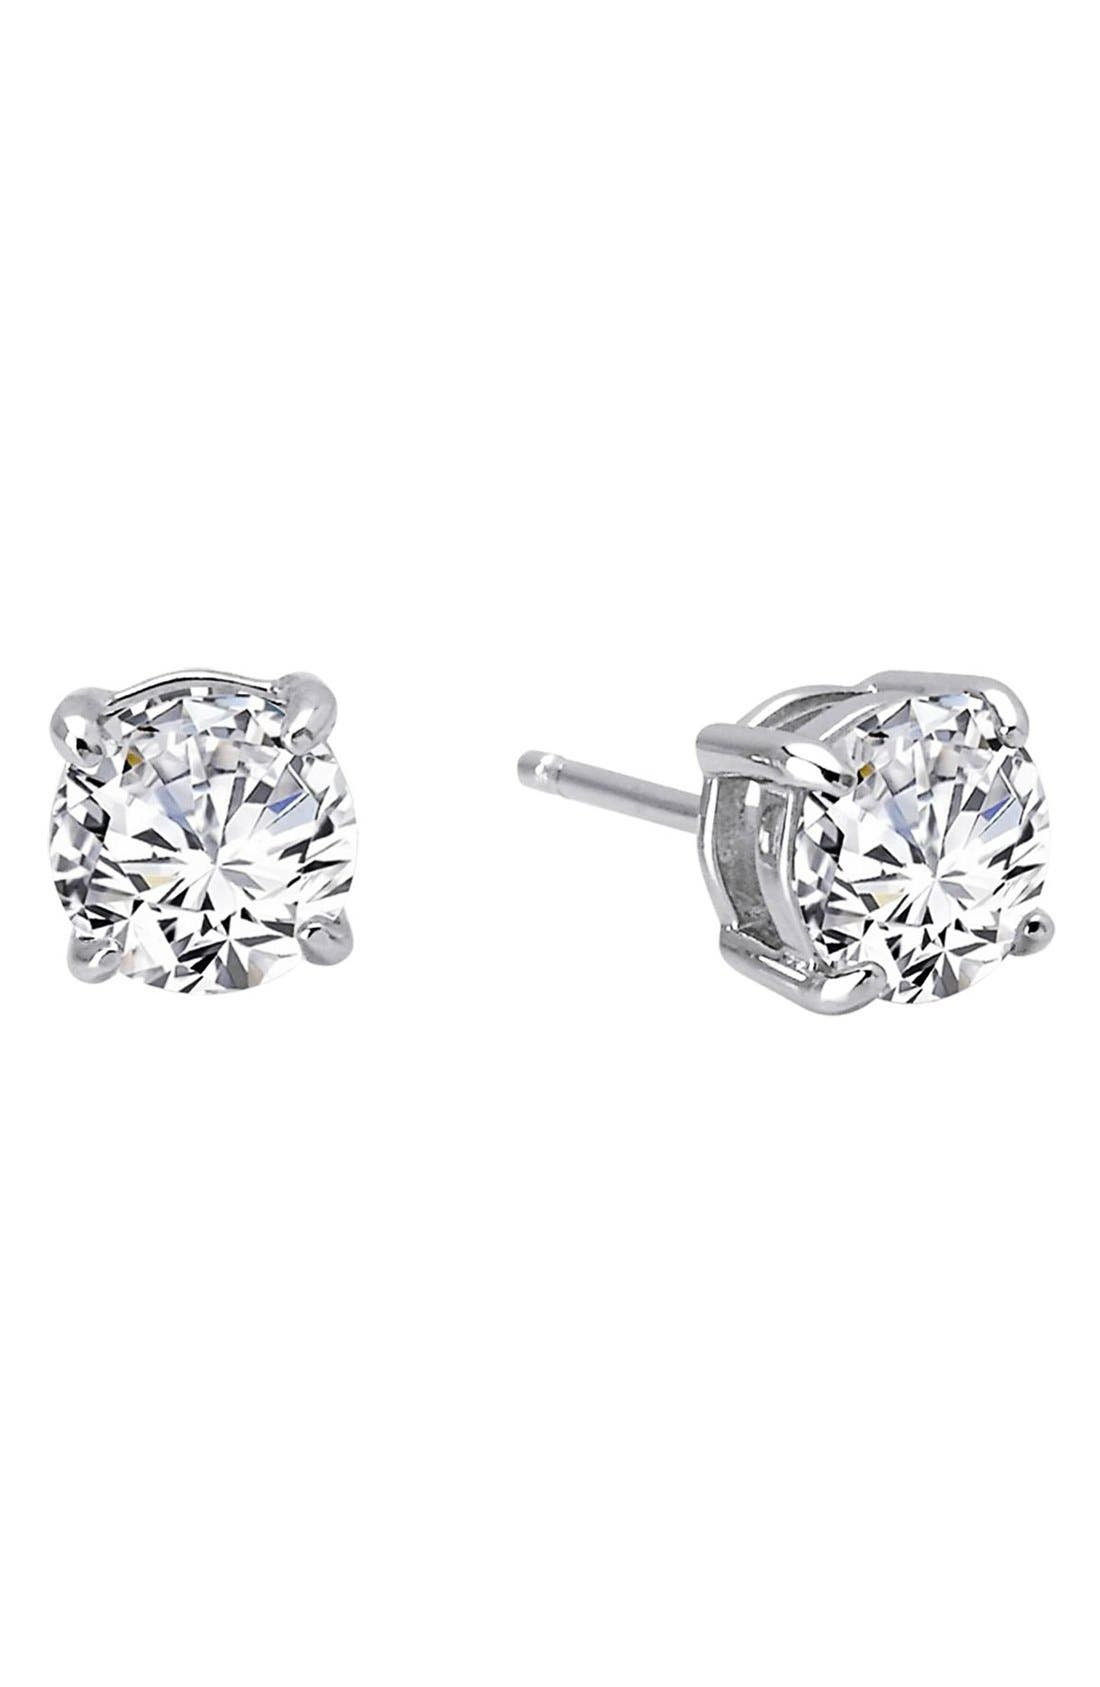 'Lassaire' Four Prong Stud Earrings,                         Main,                         color, SILVER